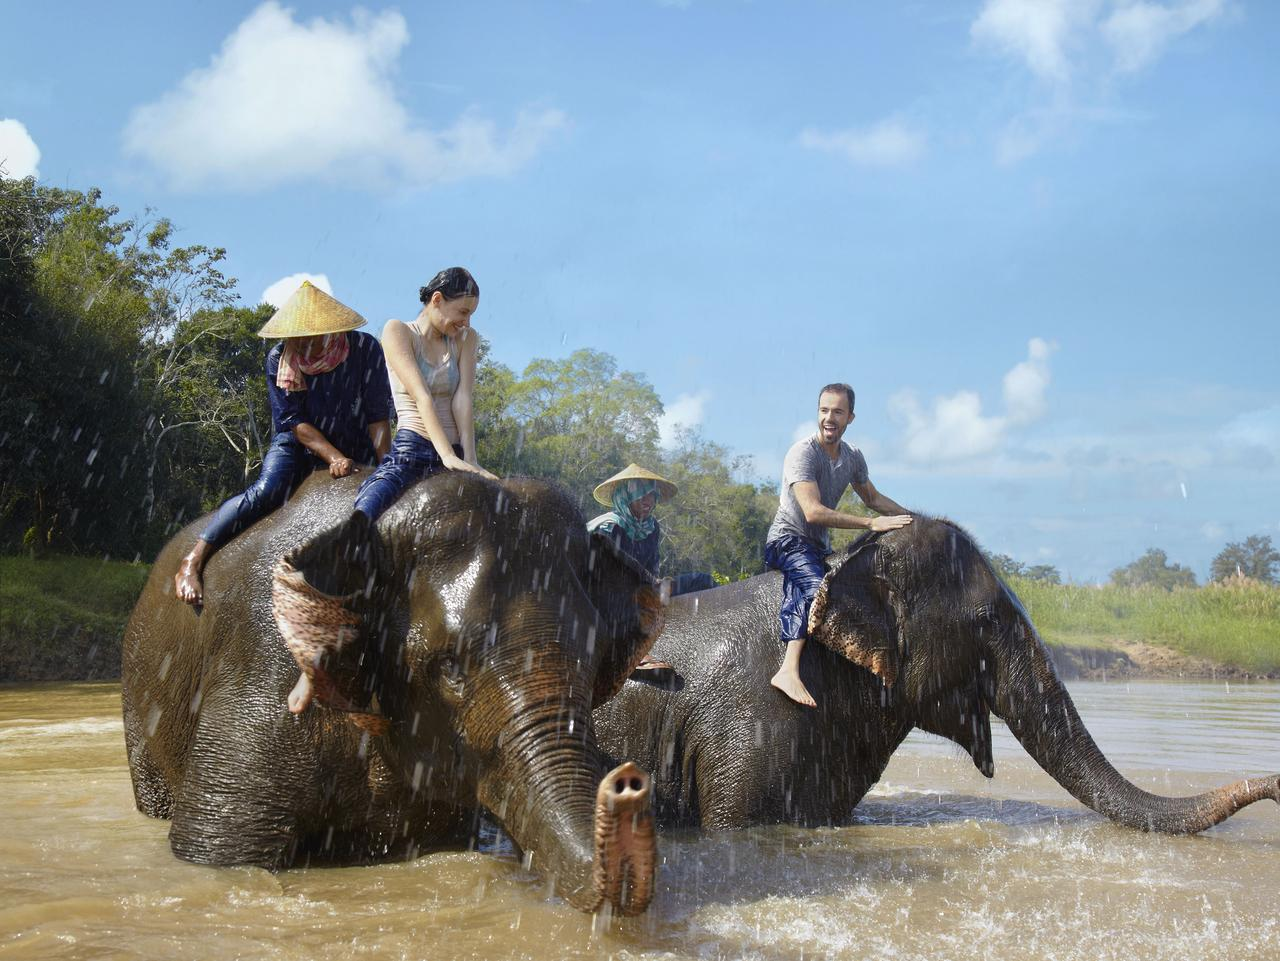 ESCAPE: TRAVEL LESSONS BY MARGARET BARCA - Mahout training: Gold Triangle Elephant bath time fun. Picture: Supplied